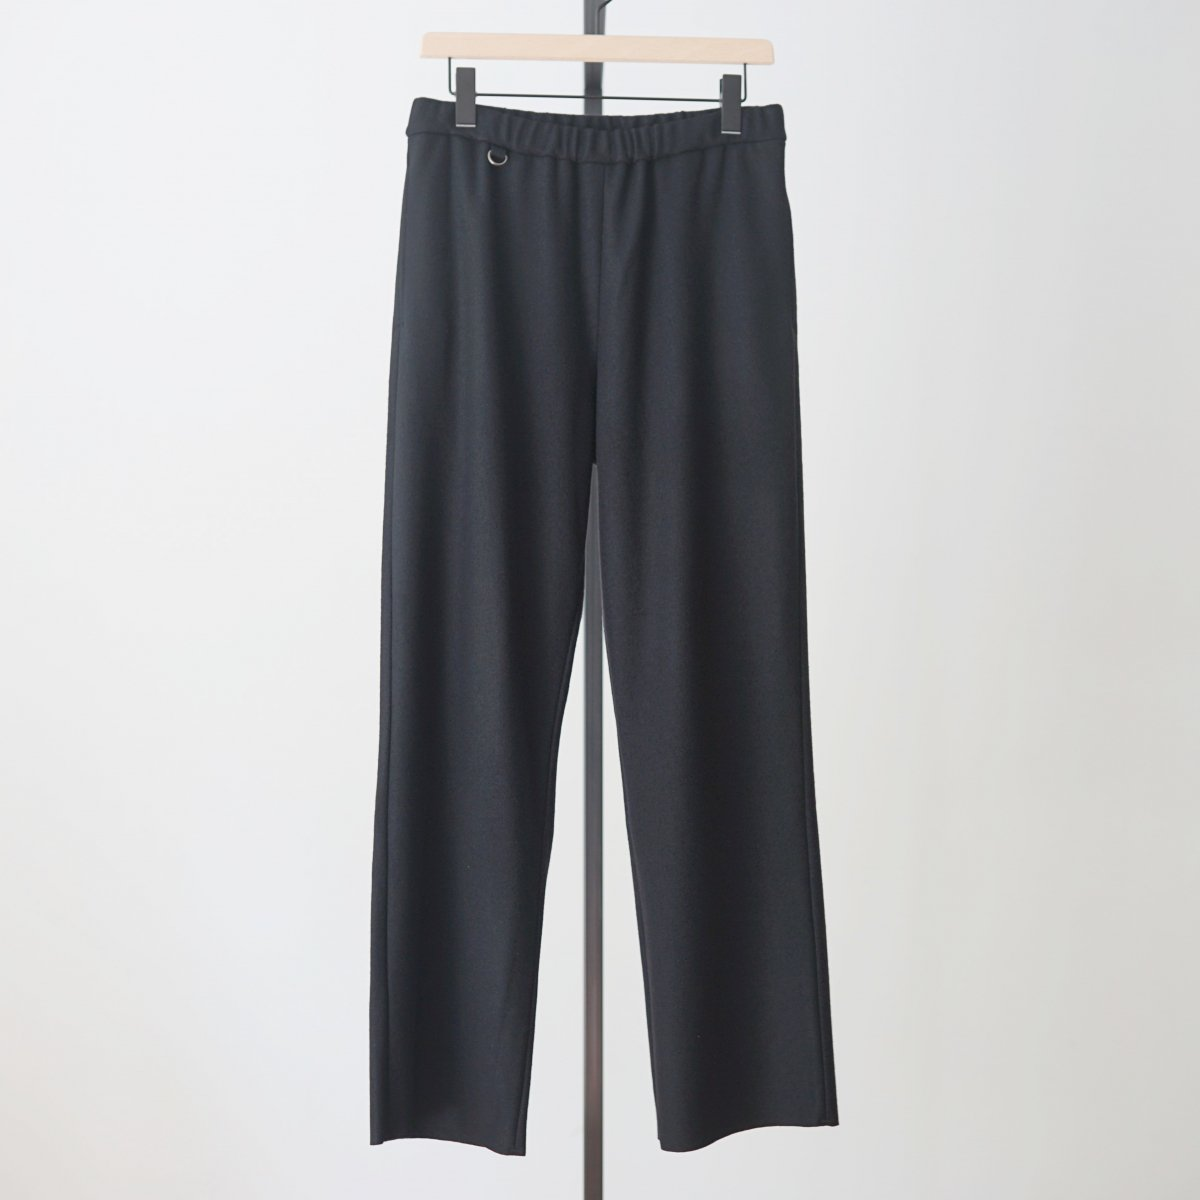 【UNDECORATED アンデコレイテッド】S140 WOOL KNIT PANTS - BLACK